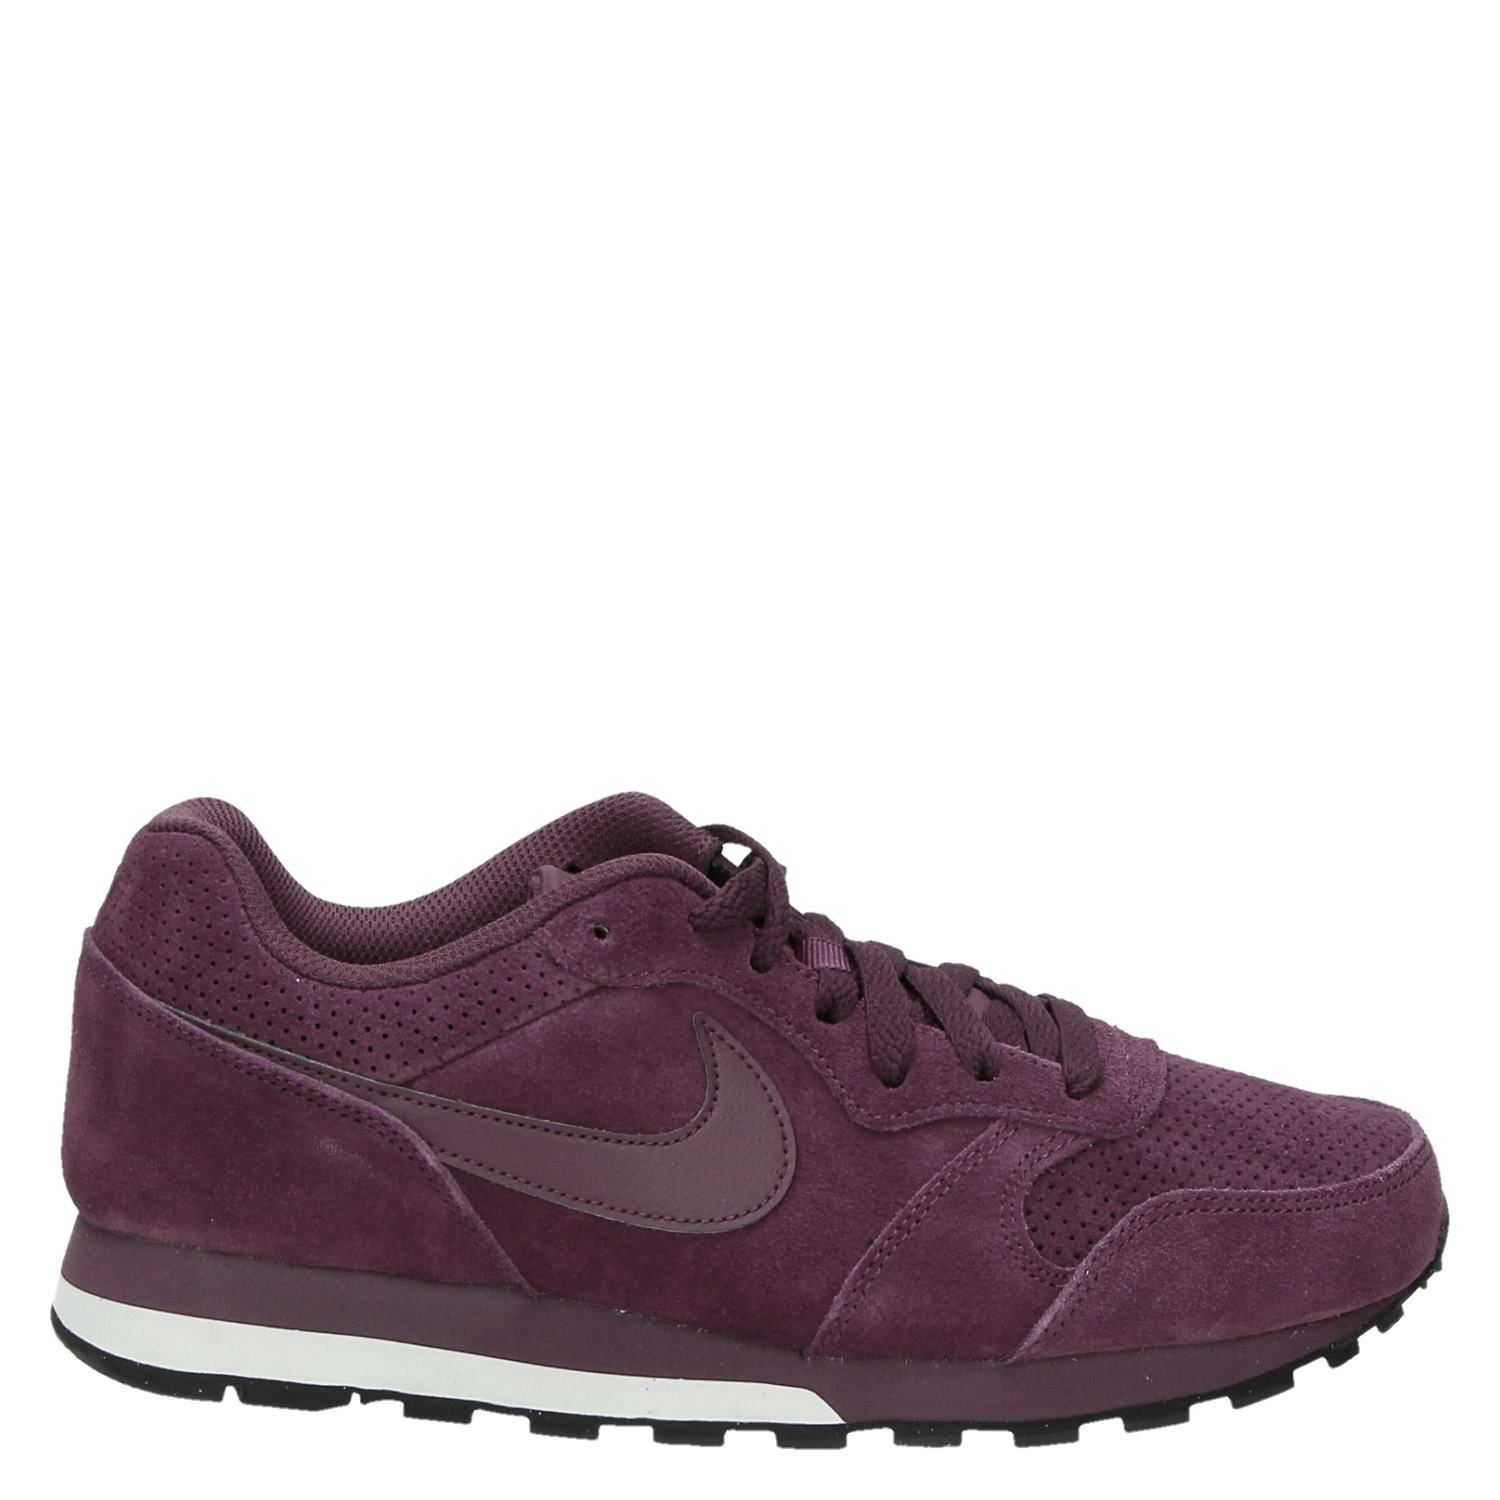 198a600af0e Nike MD Runner 2 Lea heren lage sneakers rood